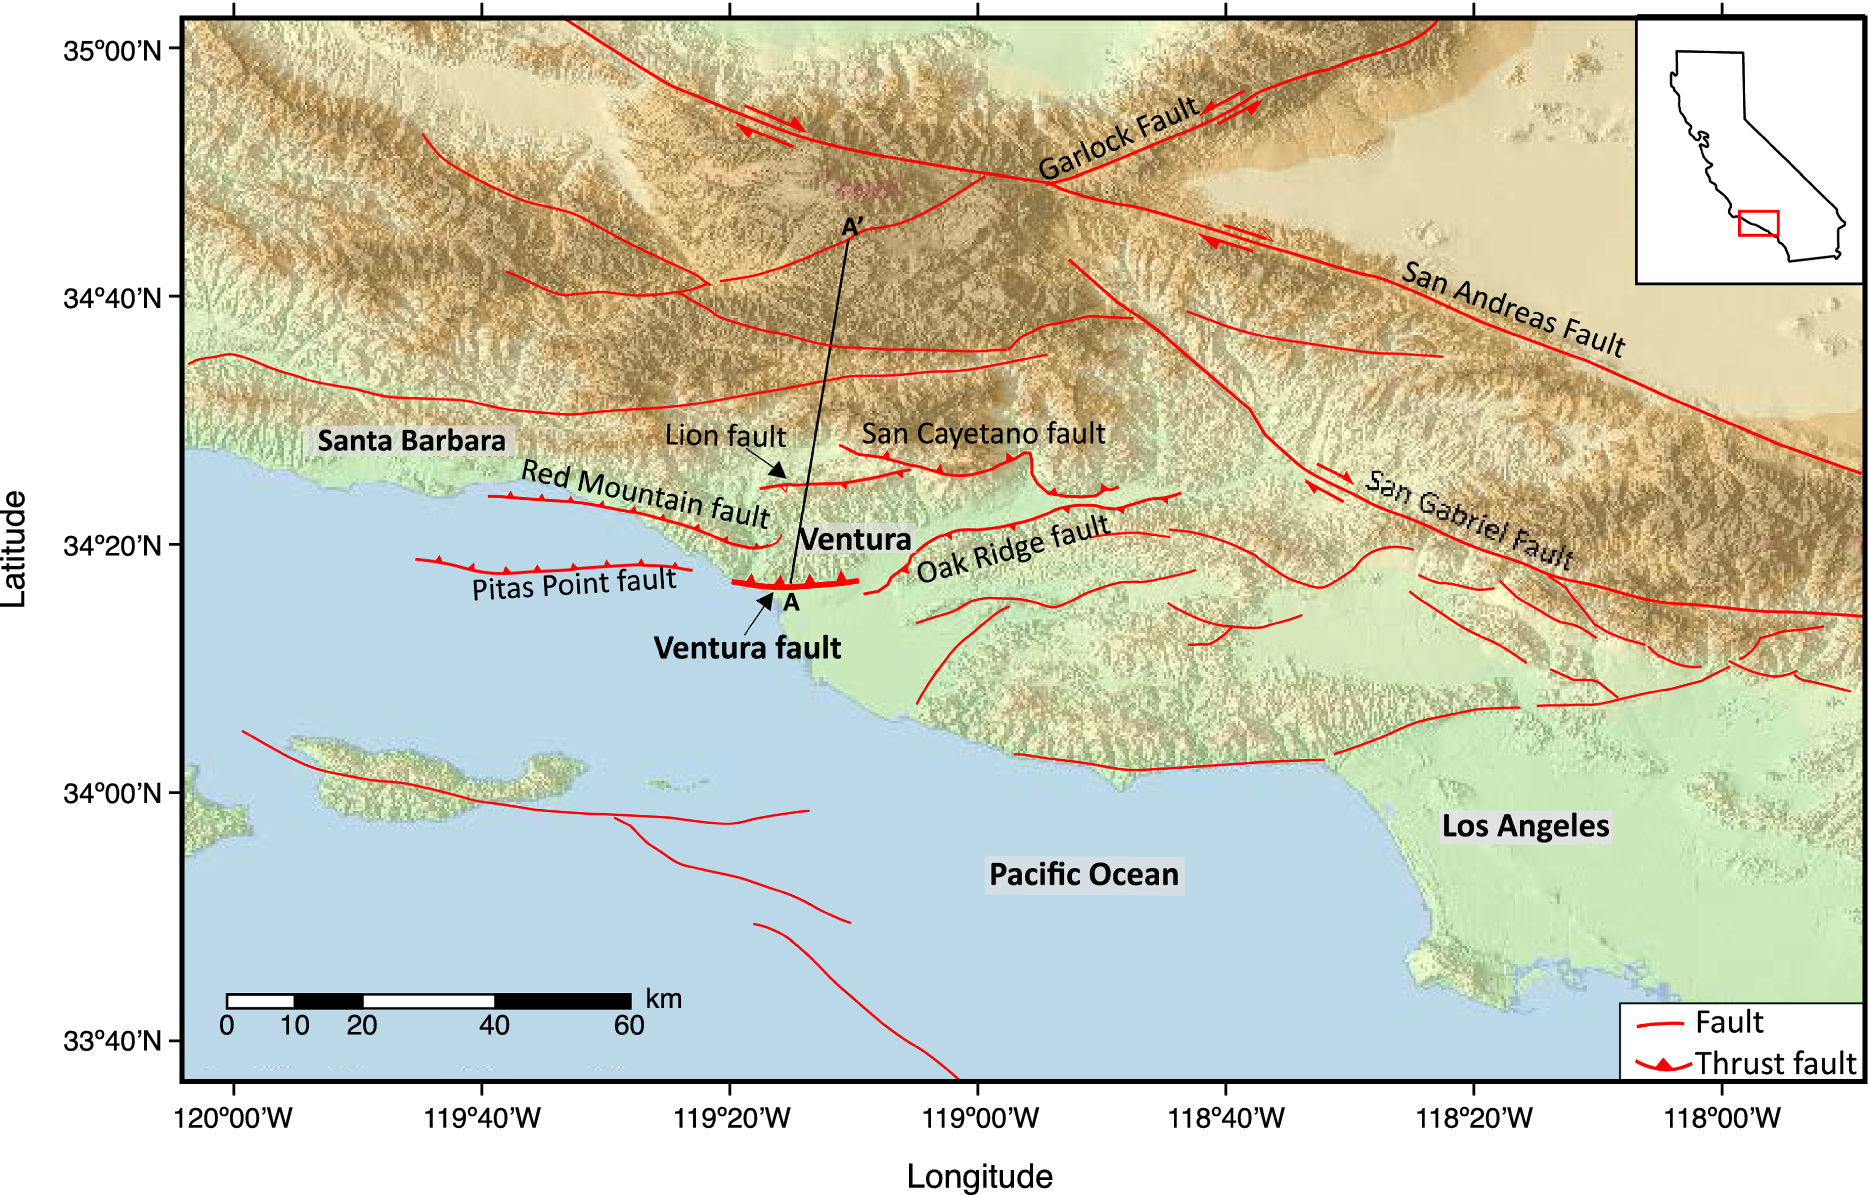 Physics-Based Scenario of Earthquake Cycles on the Ventura